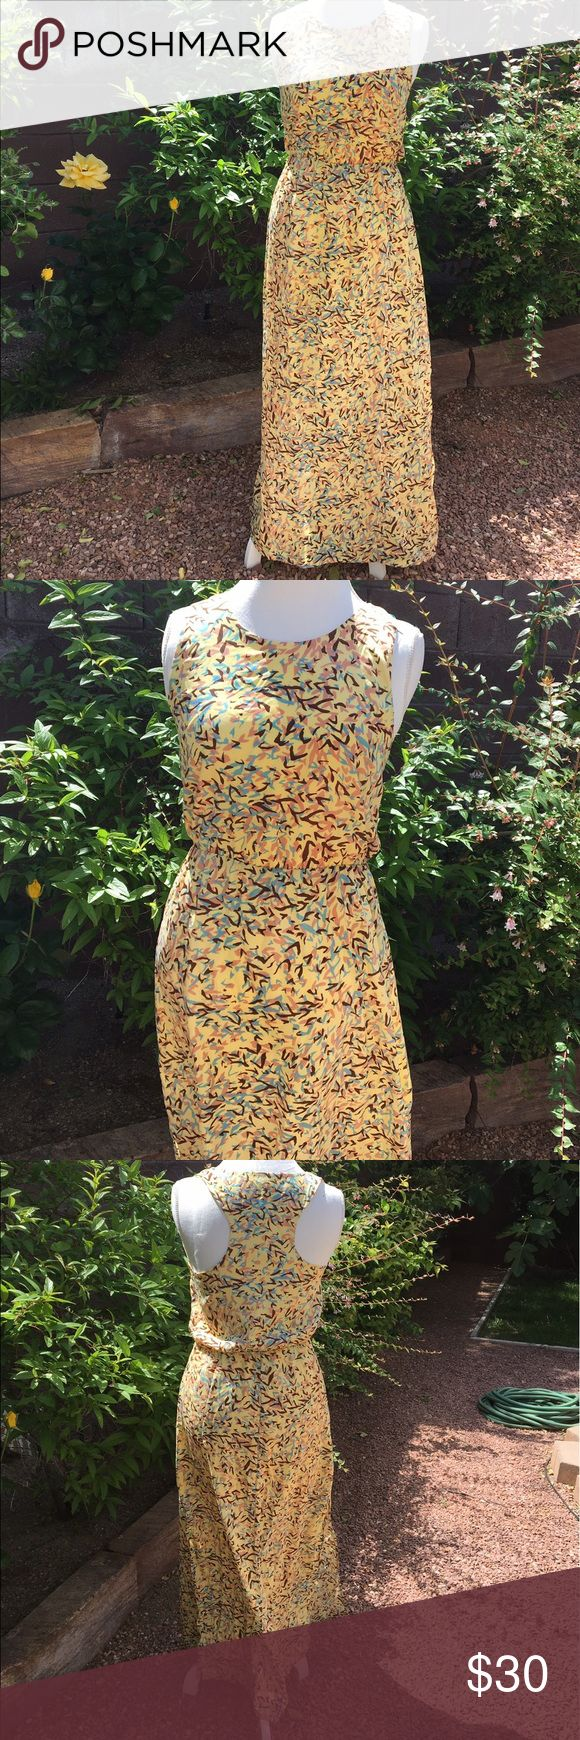 WALTER BAKER Spring Sleeveless Maxi Dress Walter Baker Maxi Dress in a spring yellow print. No rips No stains. Approx Measurements Waist: 30 Bust 36 W118 by Walter Baker Dresses